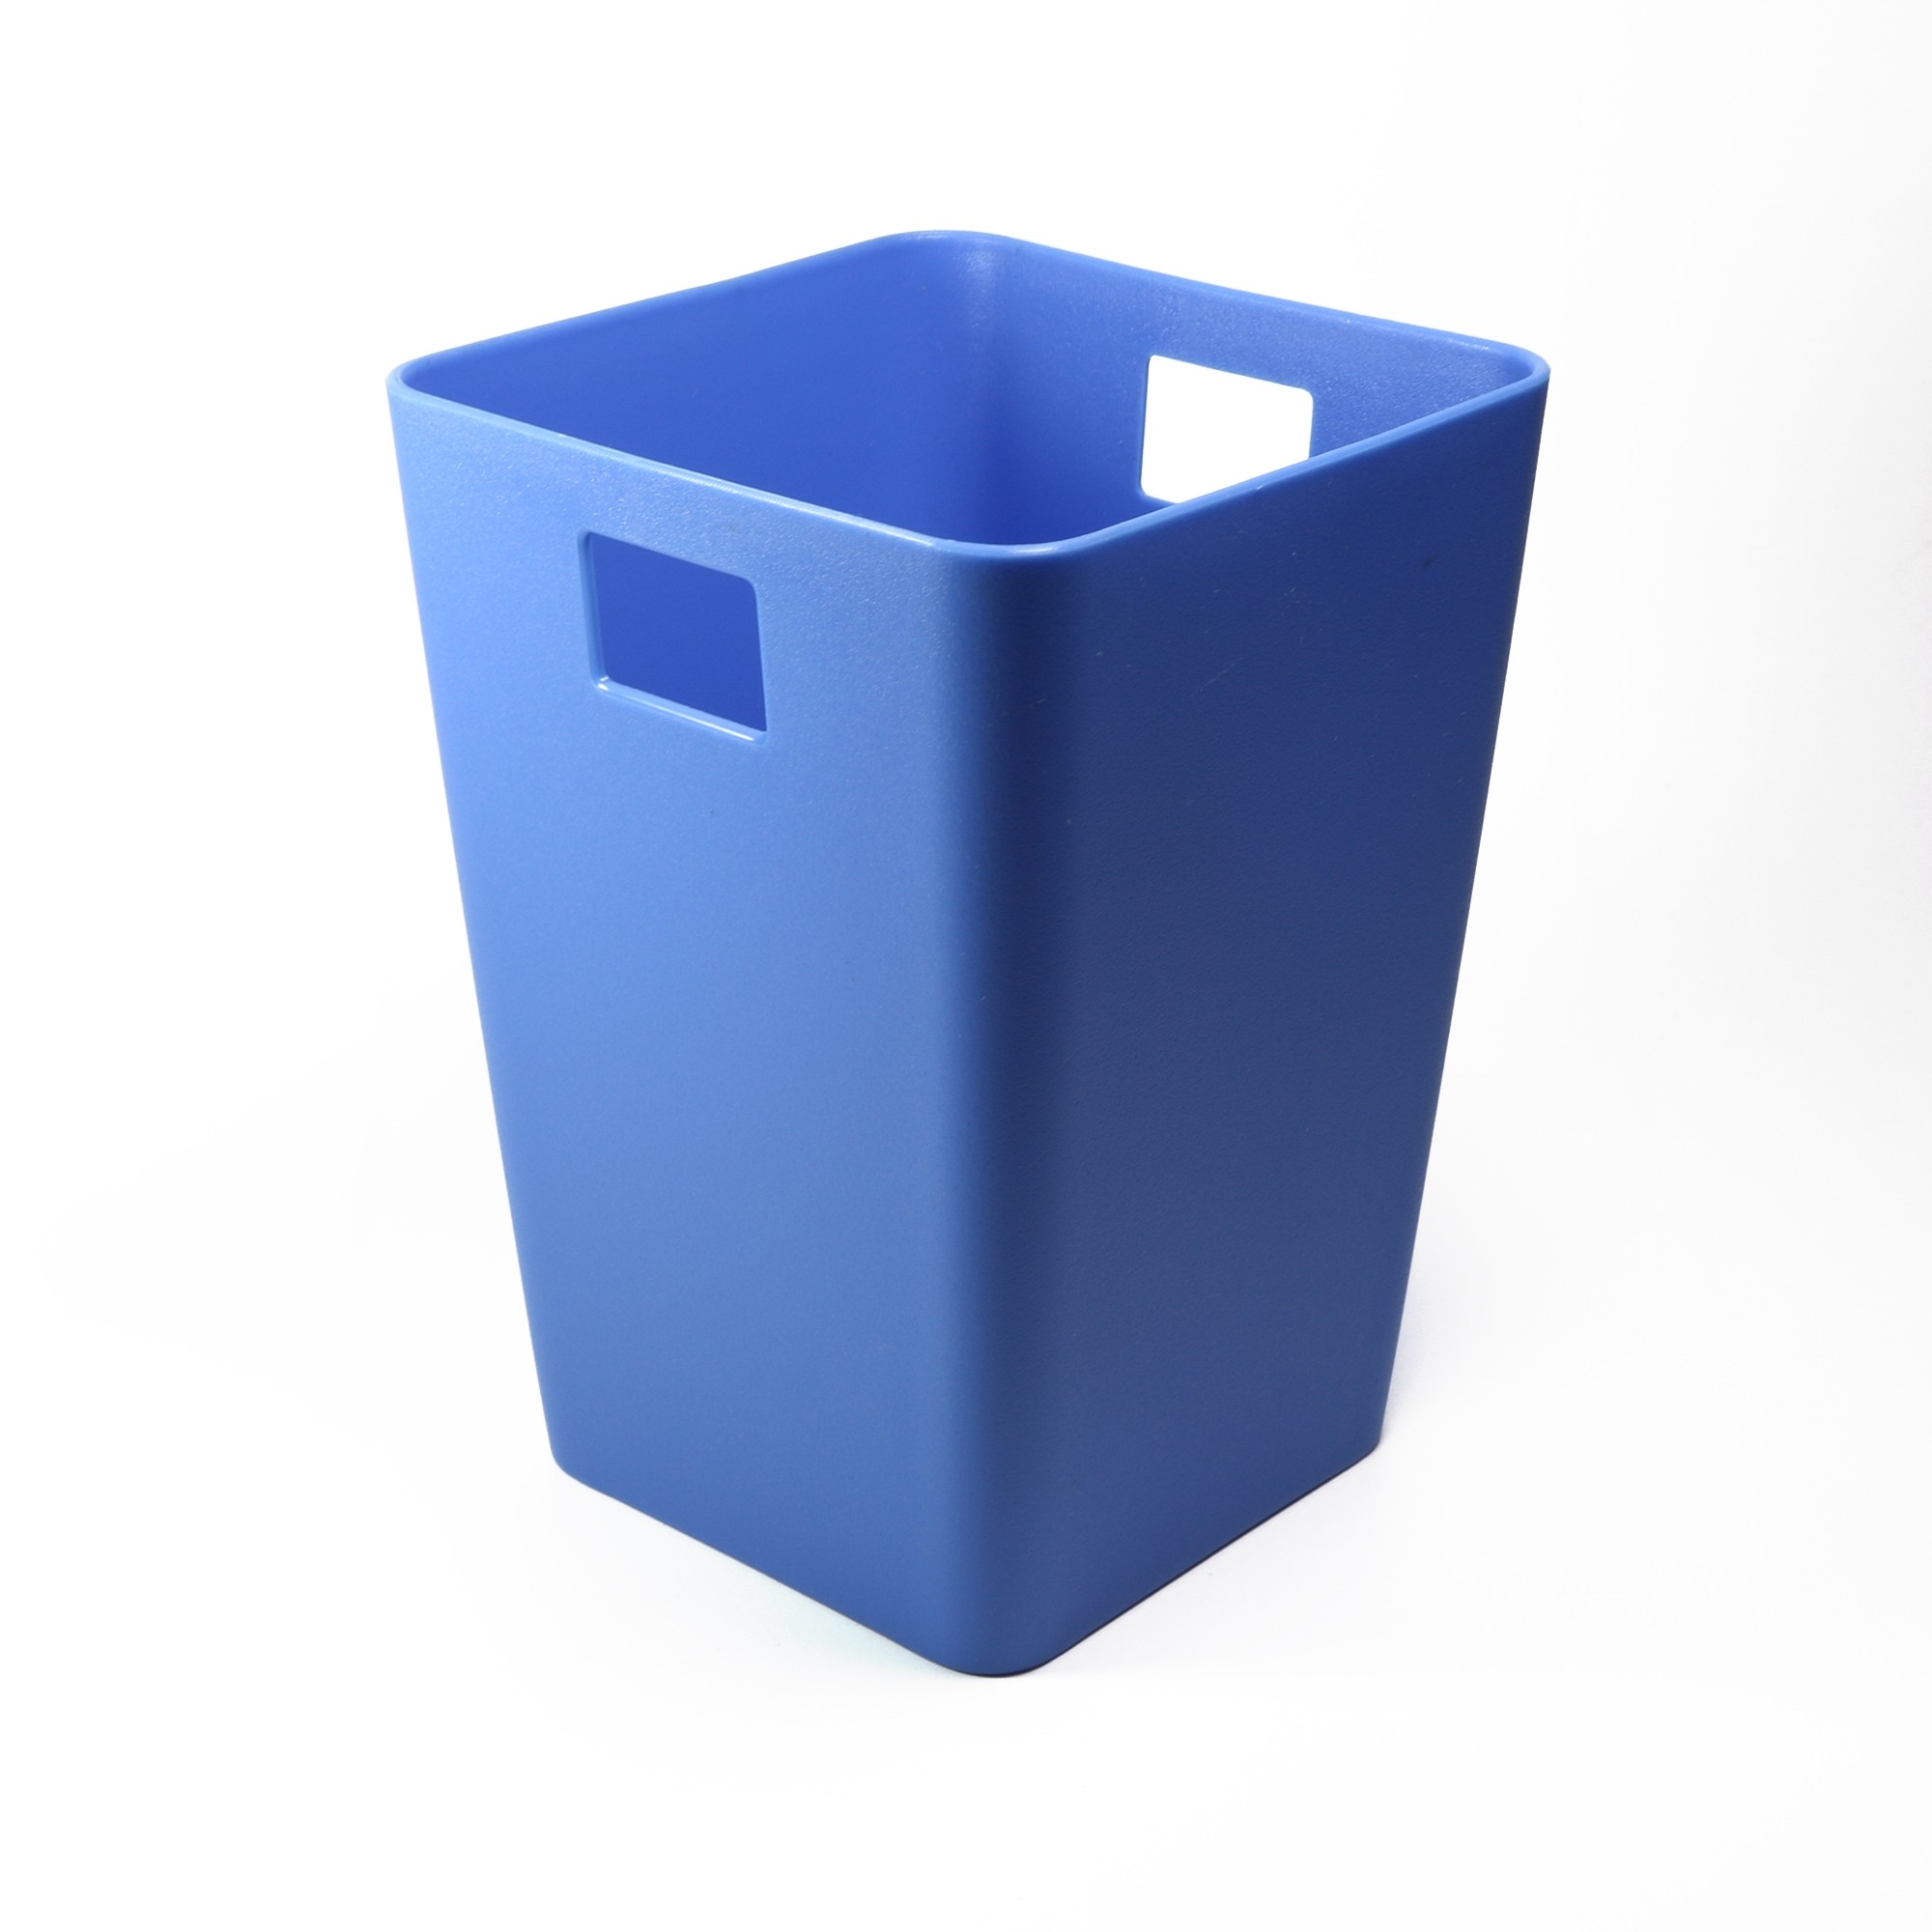 Mini Plastic Trash Can With Lid Flow Blue Mini Waste Bin Desktop Garbage Basket Table Home Office